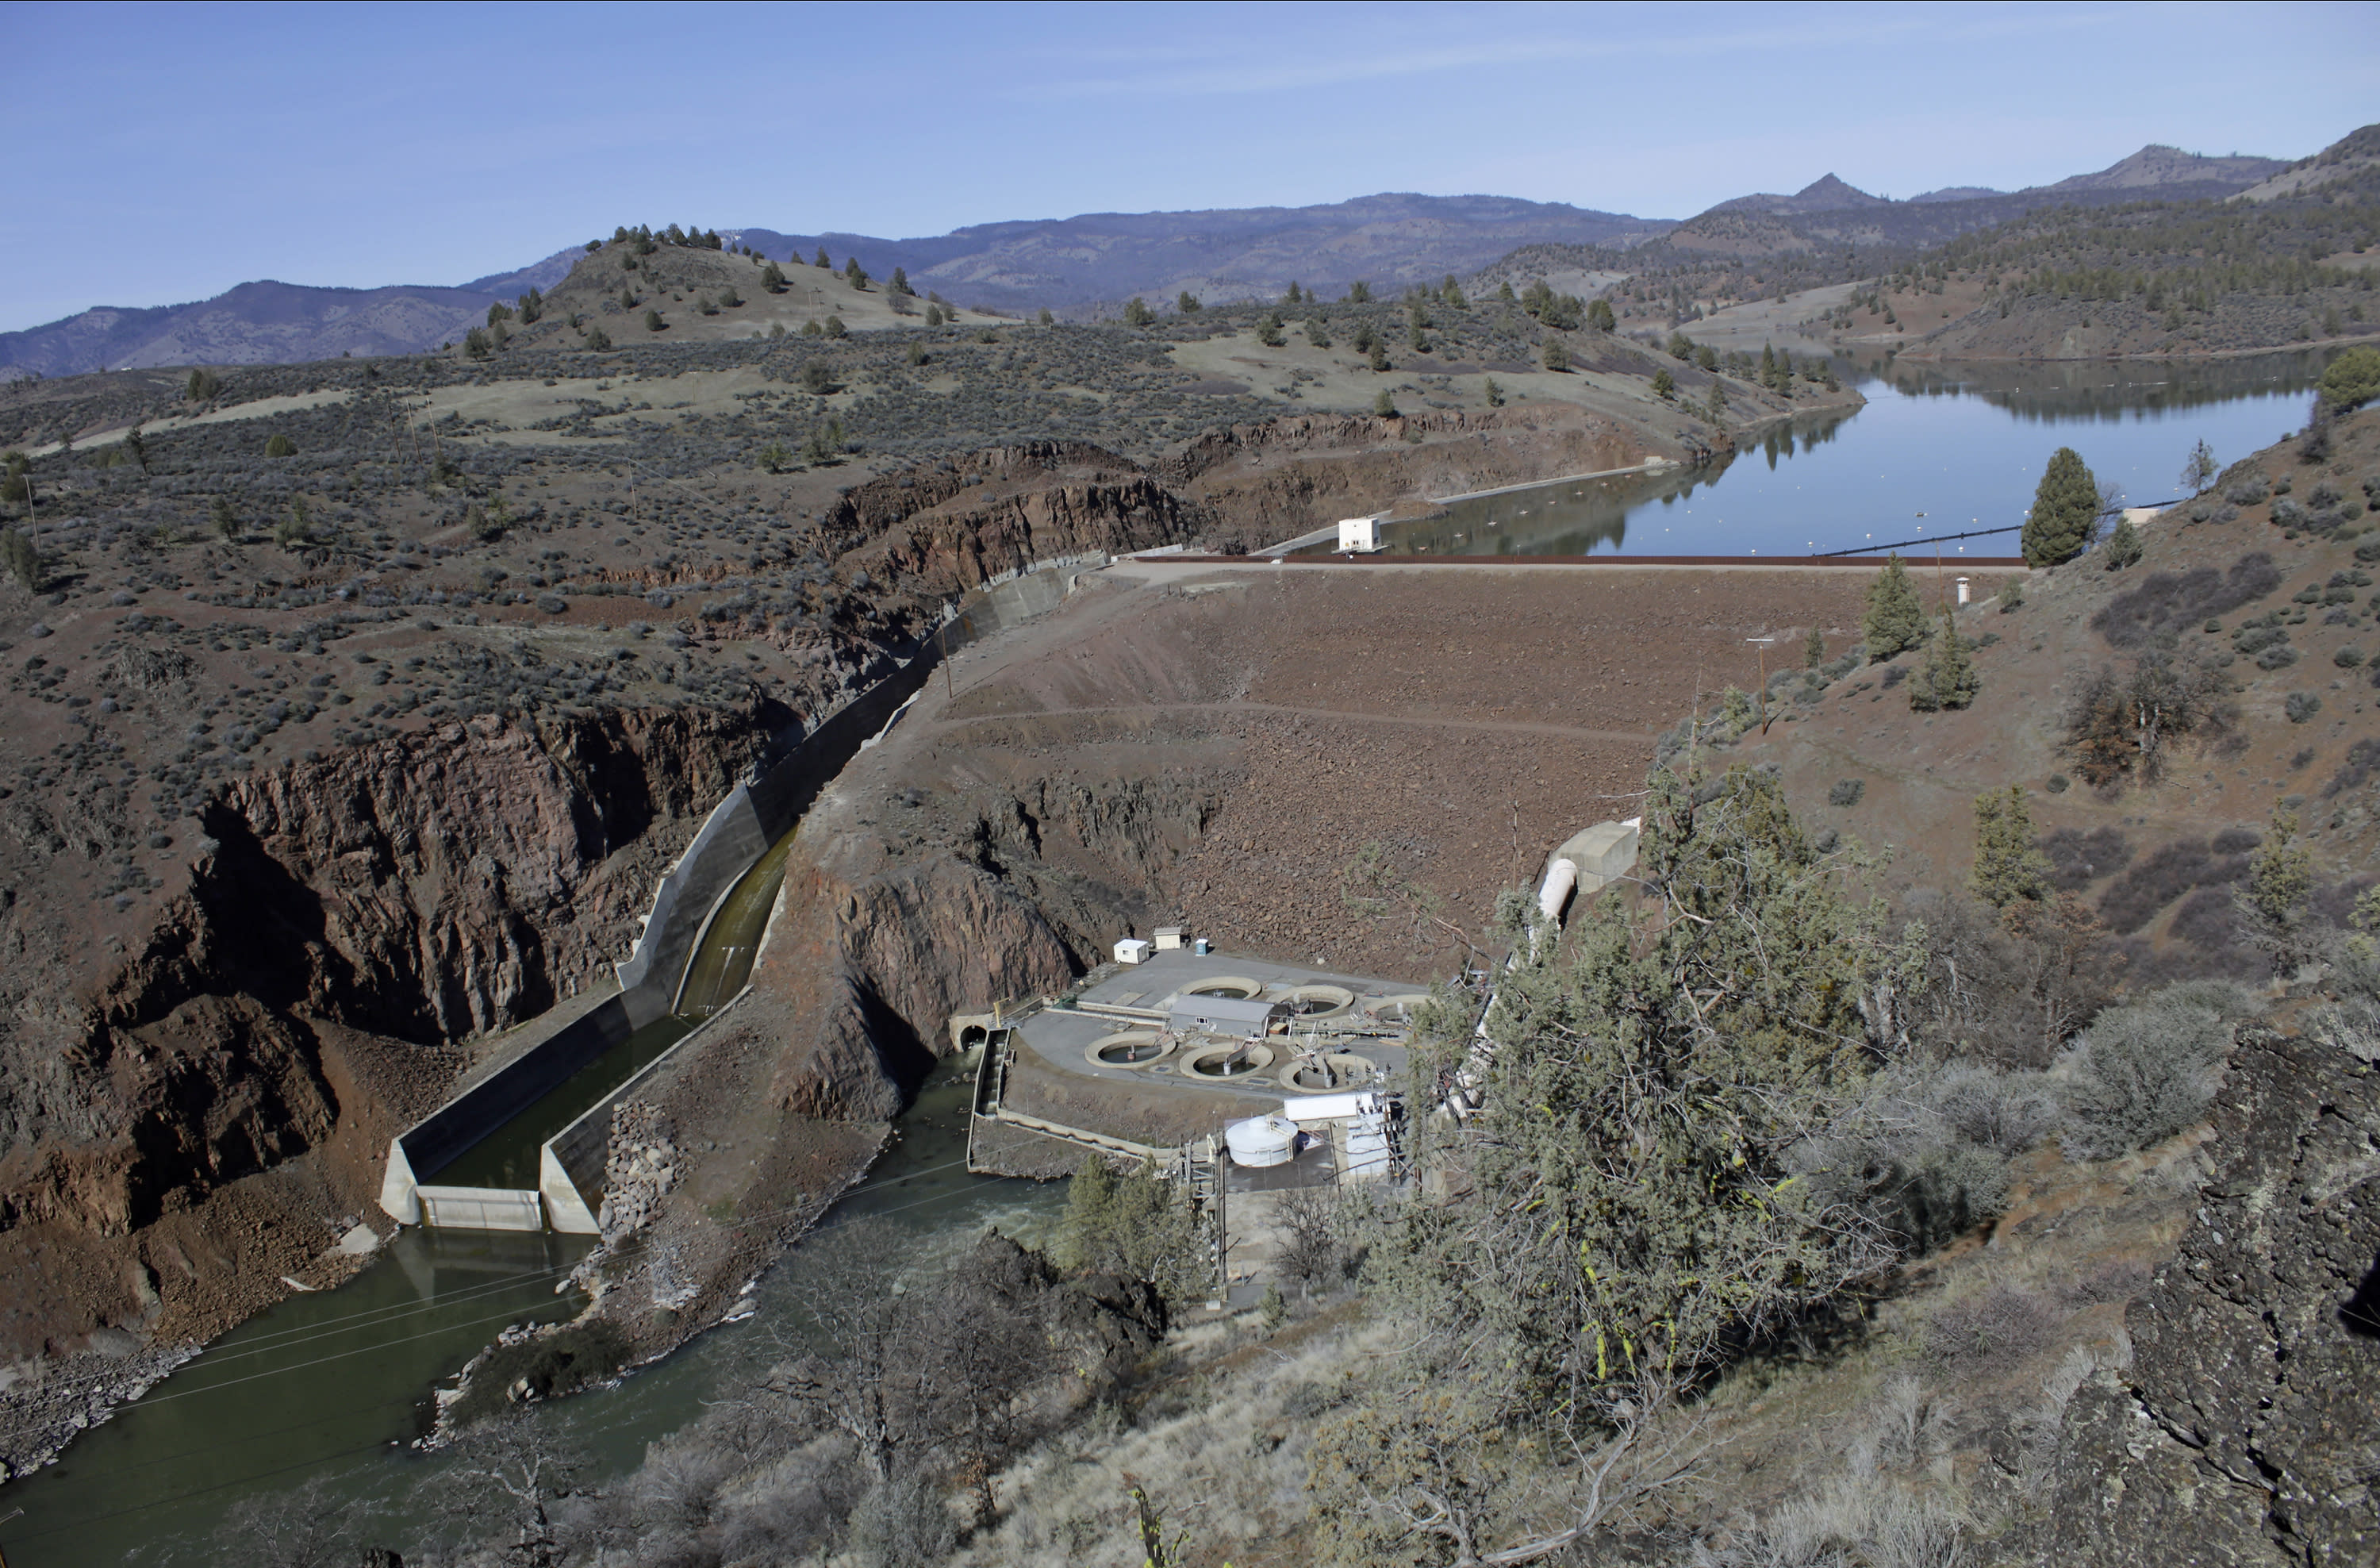 FILE - This March 3, 2020, file photo shows the Iron Gate Dam, powerhouse and spillway are on the lower Klamath River near Hornbrook, Calif. Federal regulators on Thursday, July 16, 2020, threw a significant curveball at a coalition that has been planning for years to demolish four massive hydroelectric dams on a river along the Oregon-California border to save salmon. (AP Photo/Gillian Flaccus, File)